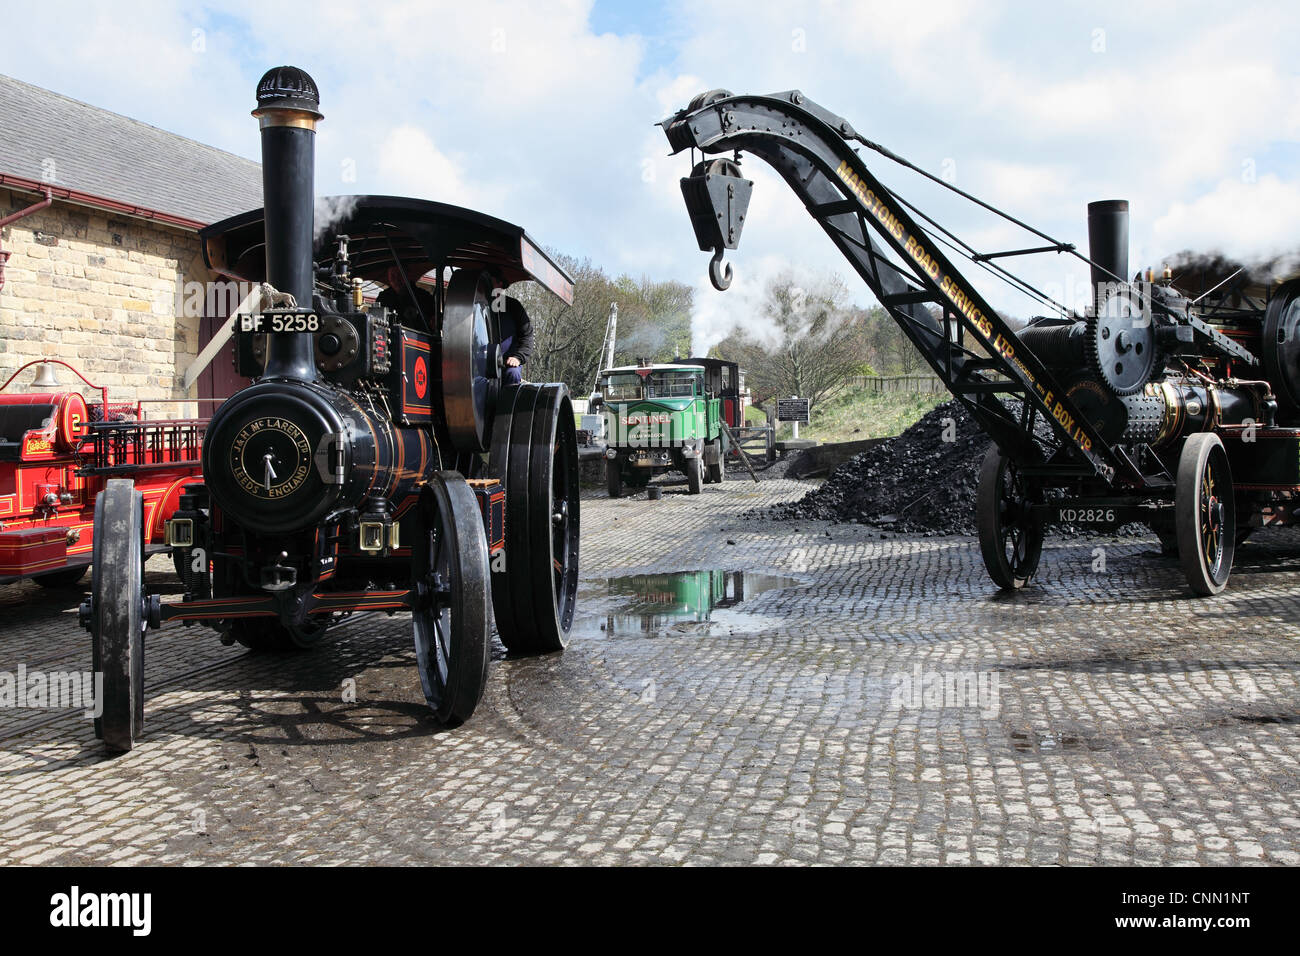 Two steam traction engines and a steam lorry at the North of England Open Air Museum Beamish NE England UK - Stock Image